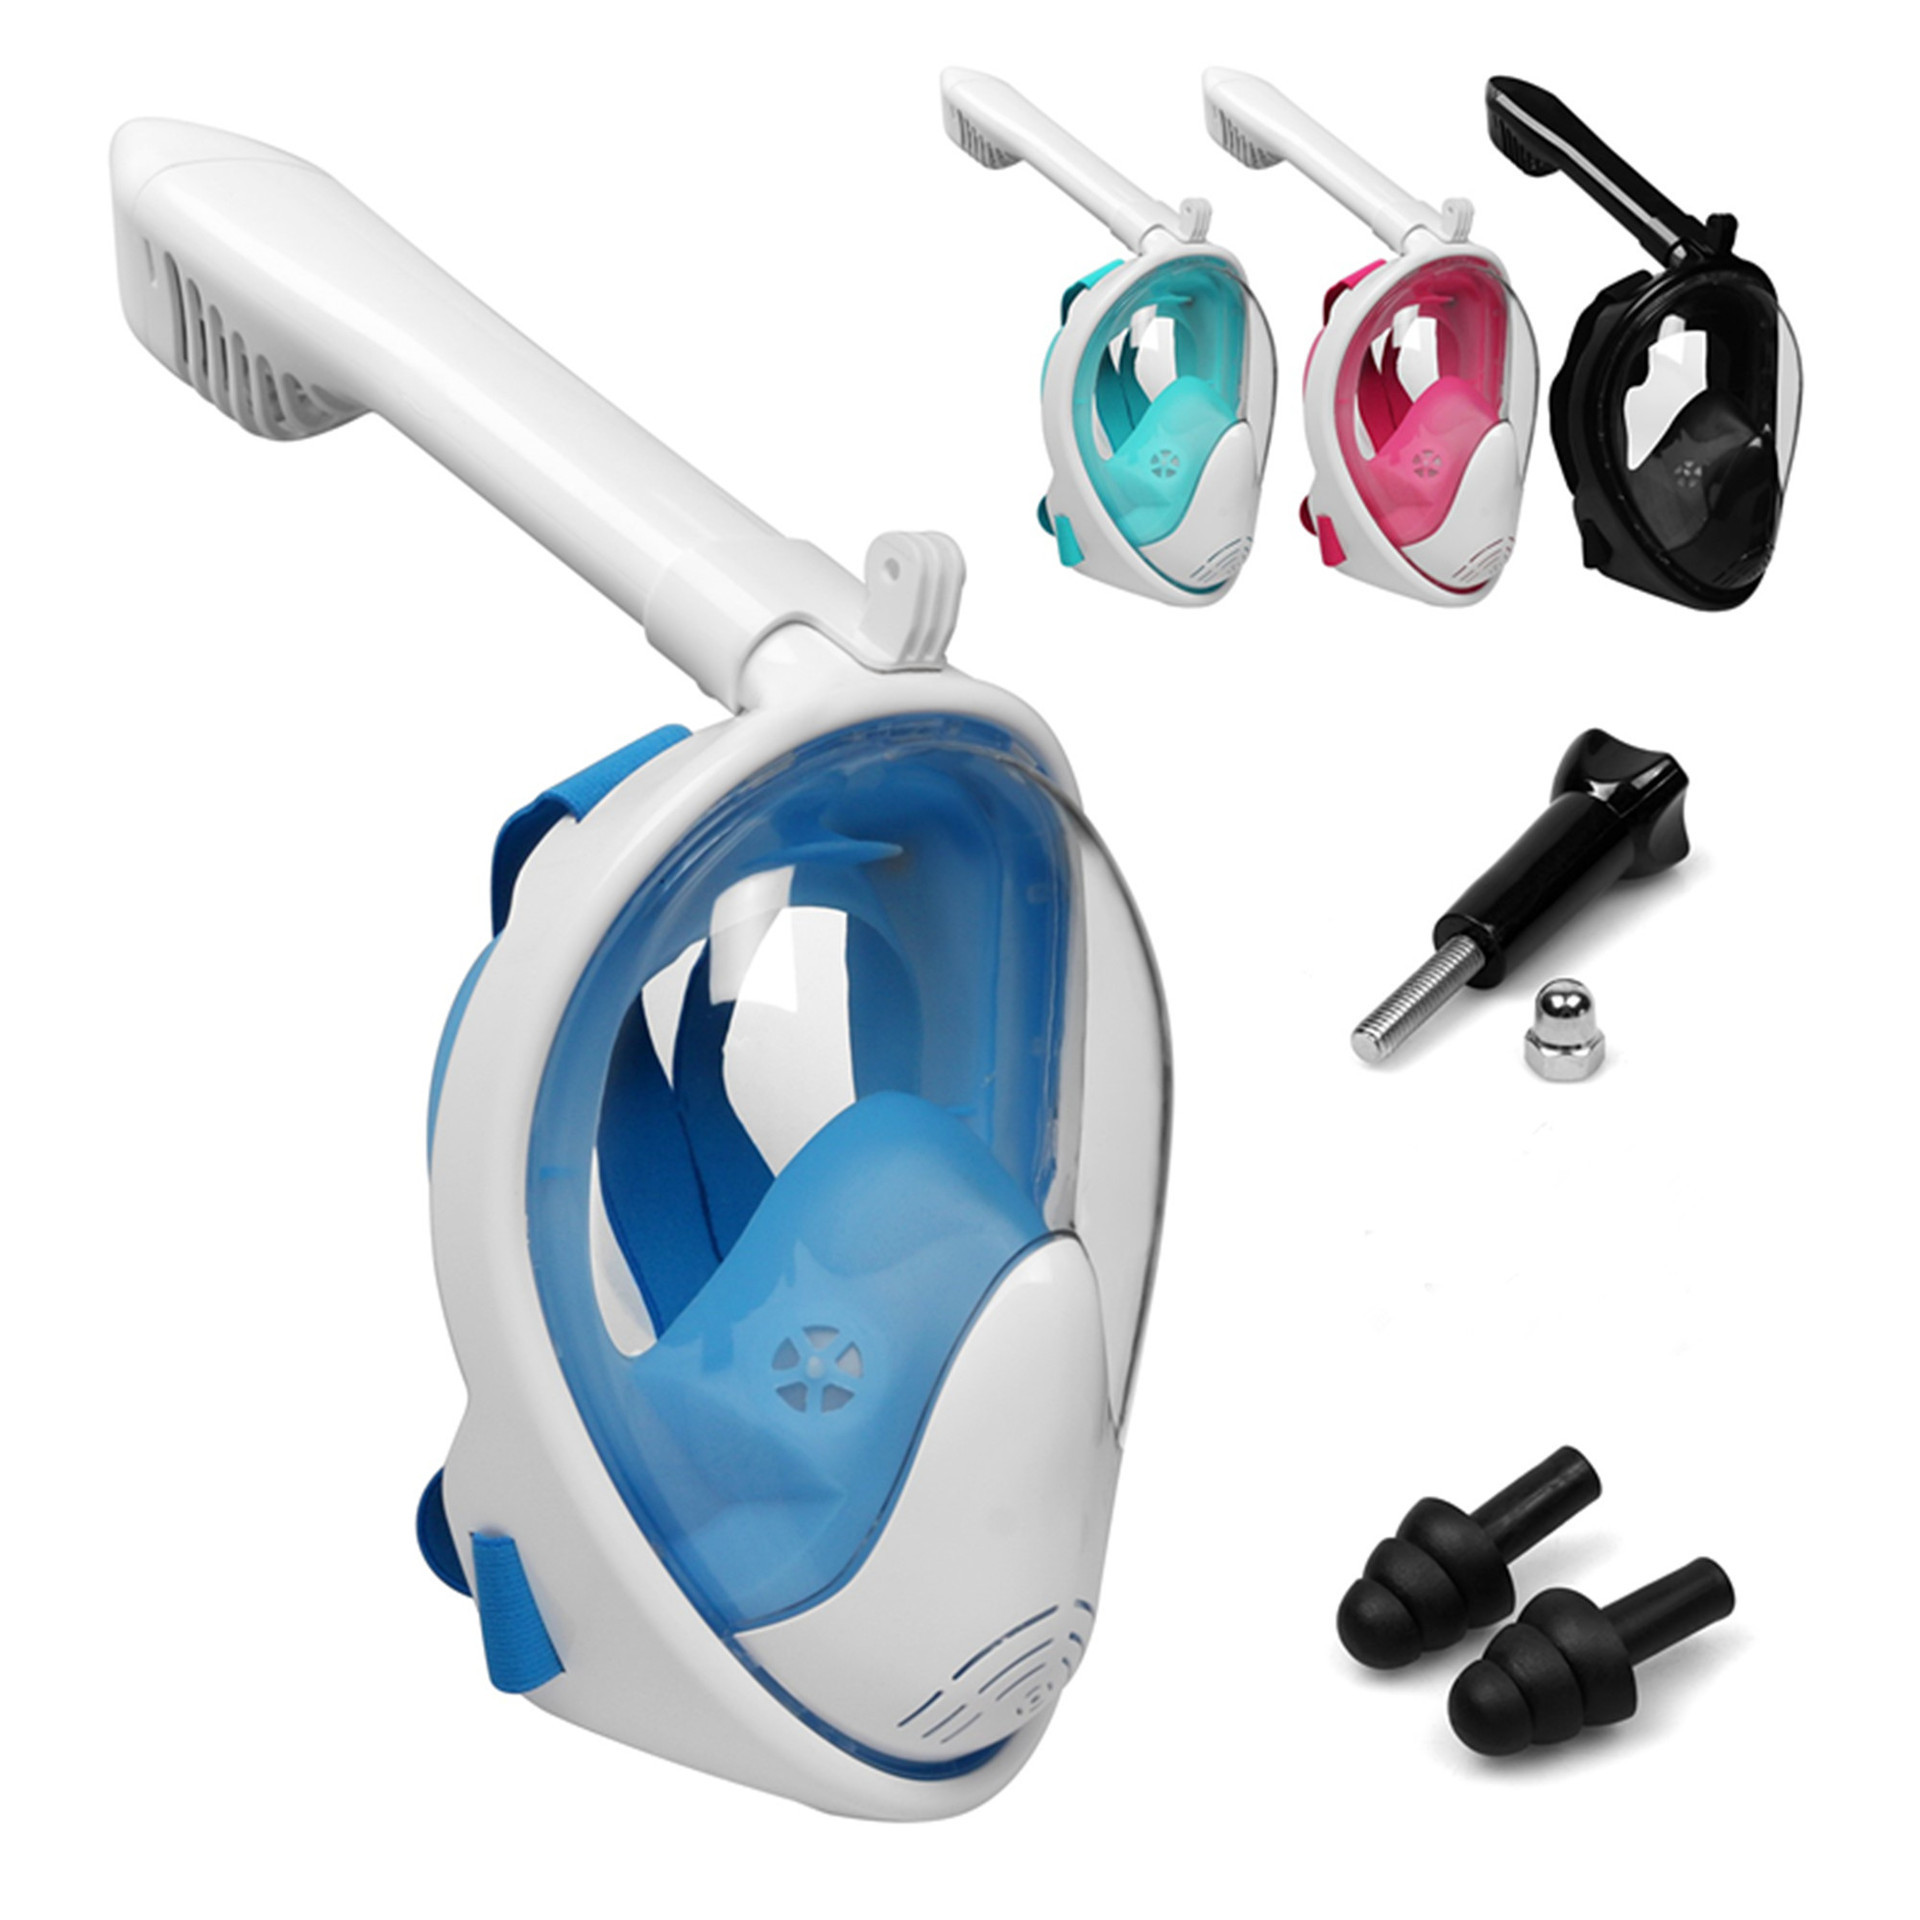 Scuba Full Face Snorkel Mask Diving Mask Underwater Anti Fog Snorkeling Diving Mask For Swimming Spearfishing